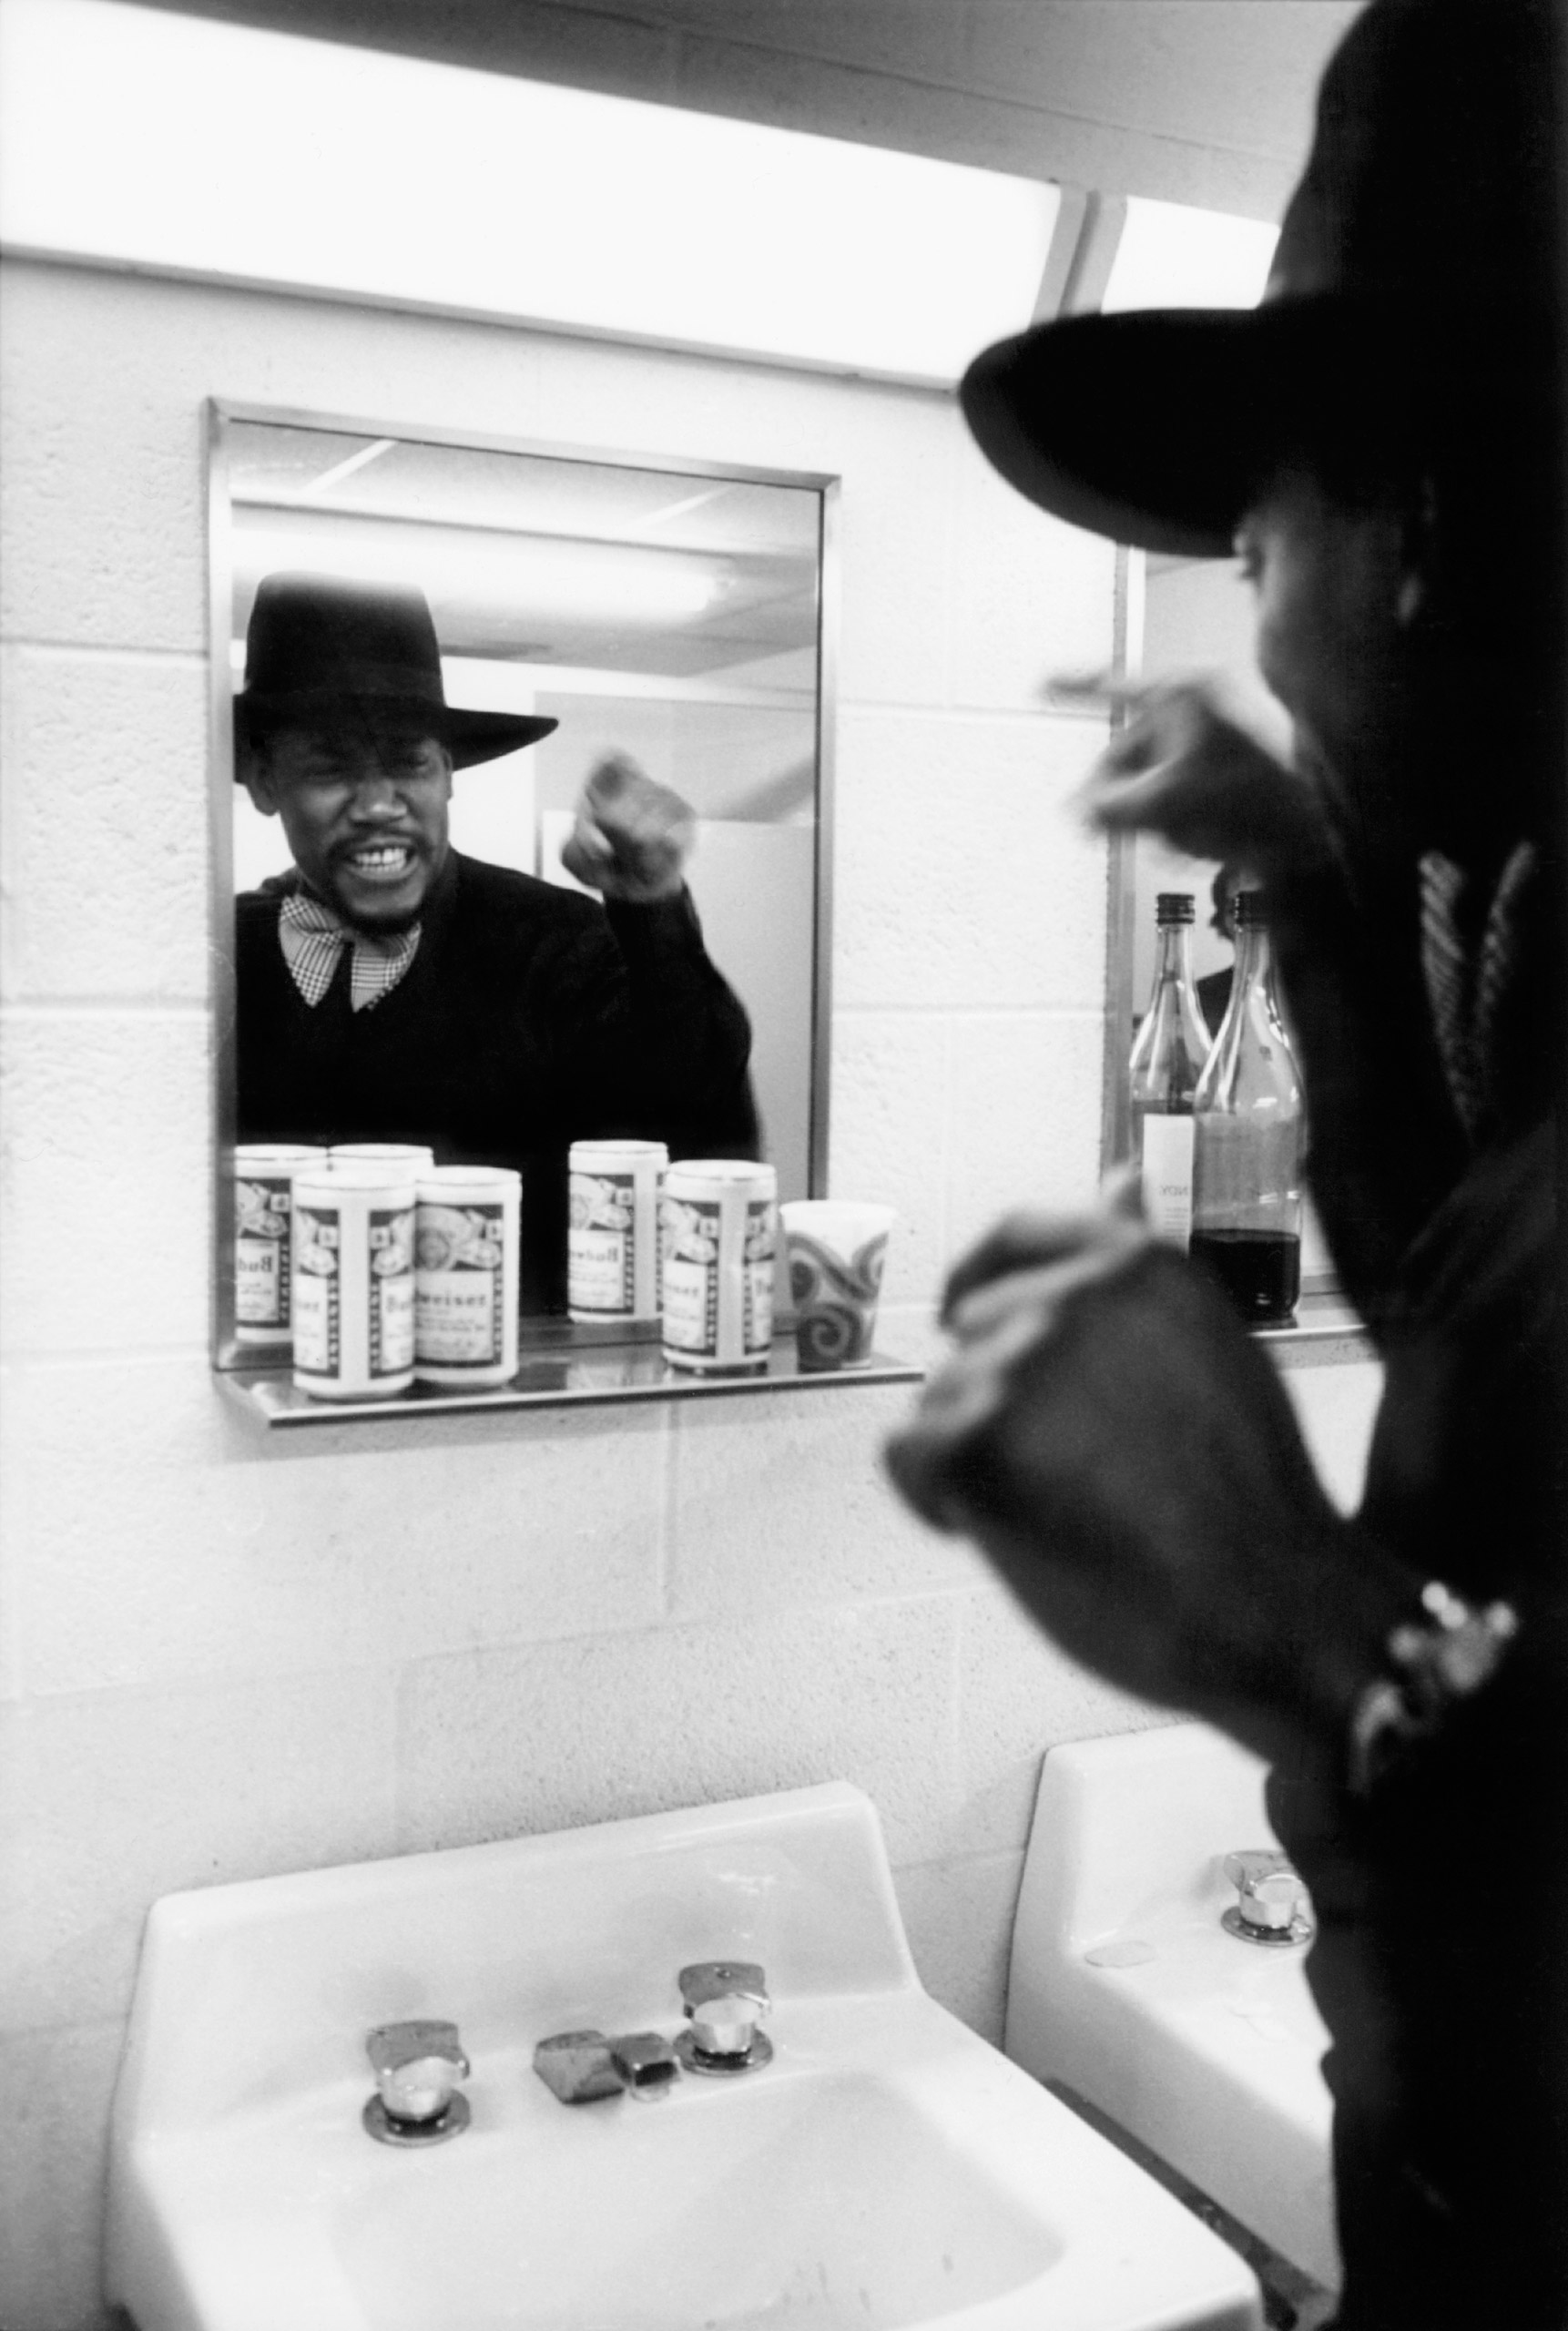 Clemons in a bathroom, talking to himself to get psyched up before a performance.